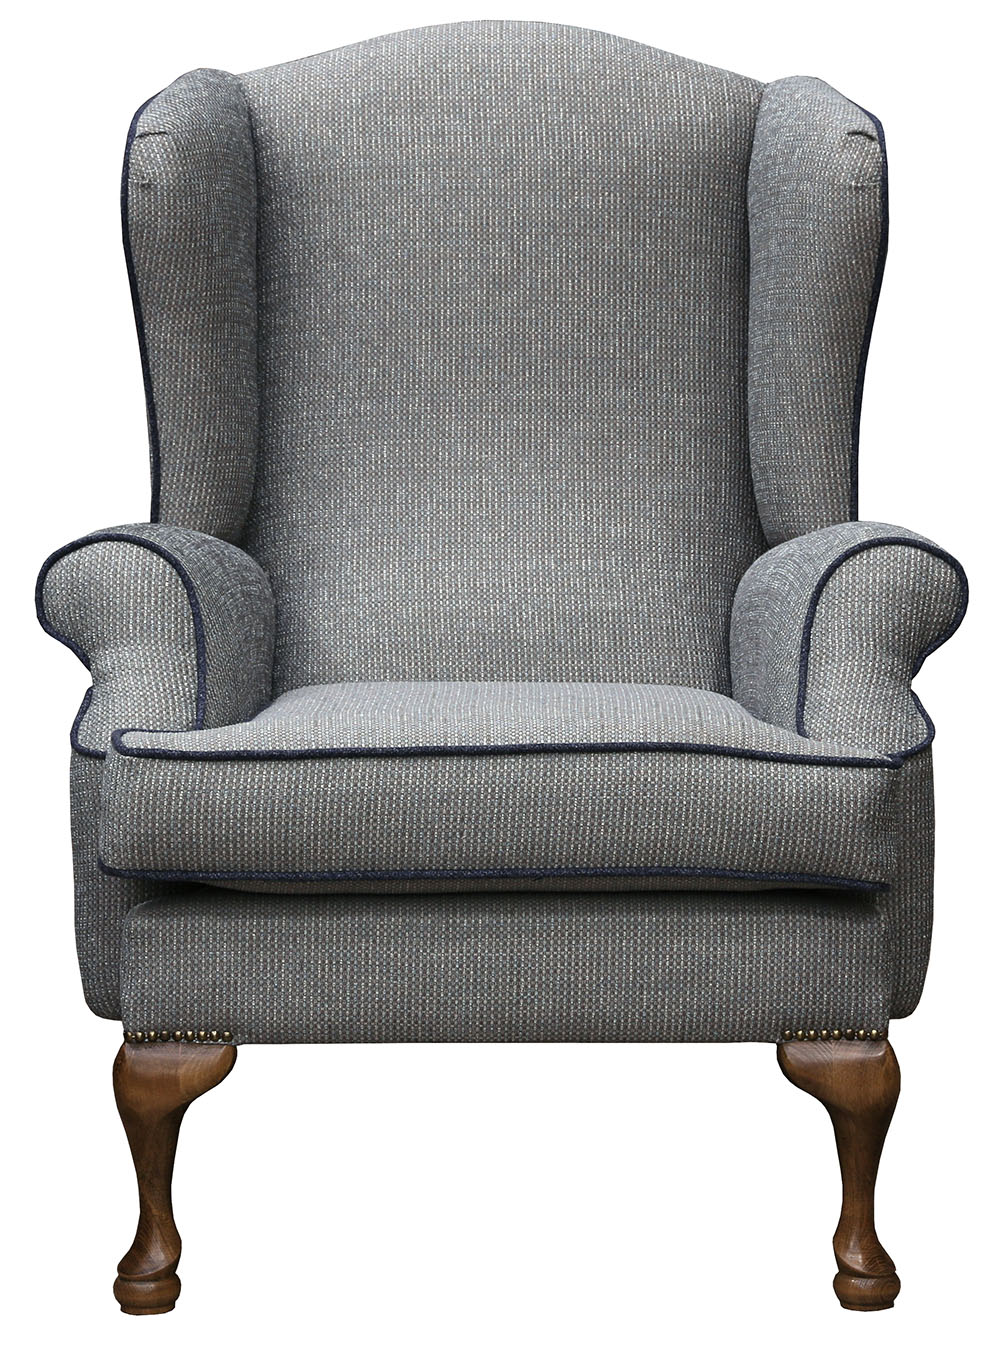 Queen Anne Chair Contrast